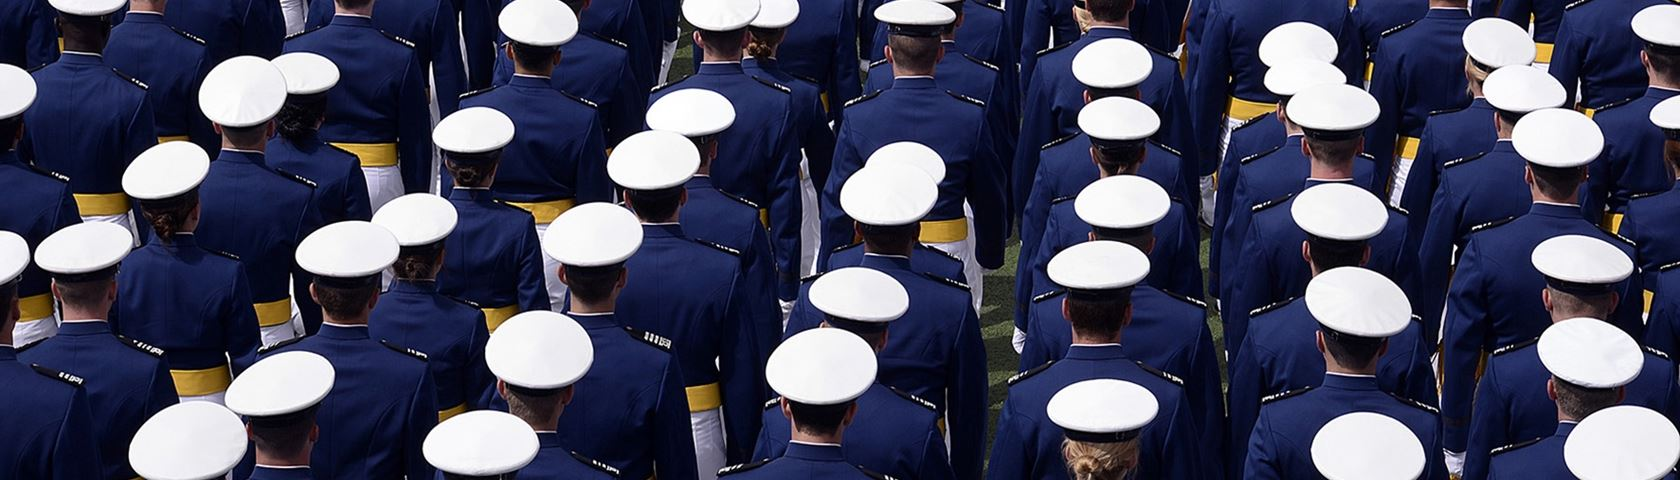 U.S Air Force Academy Graduates